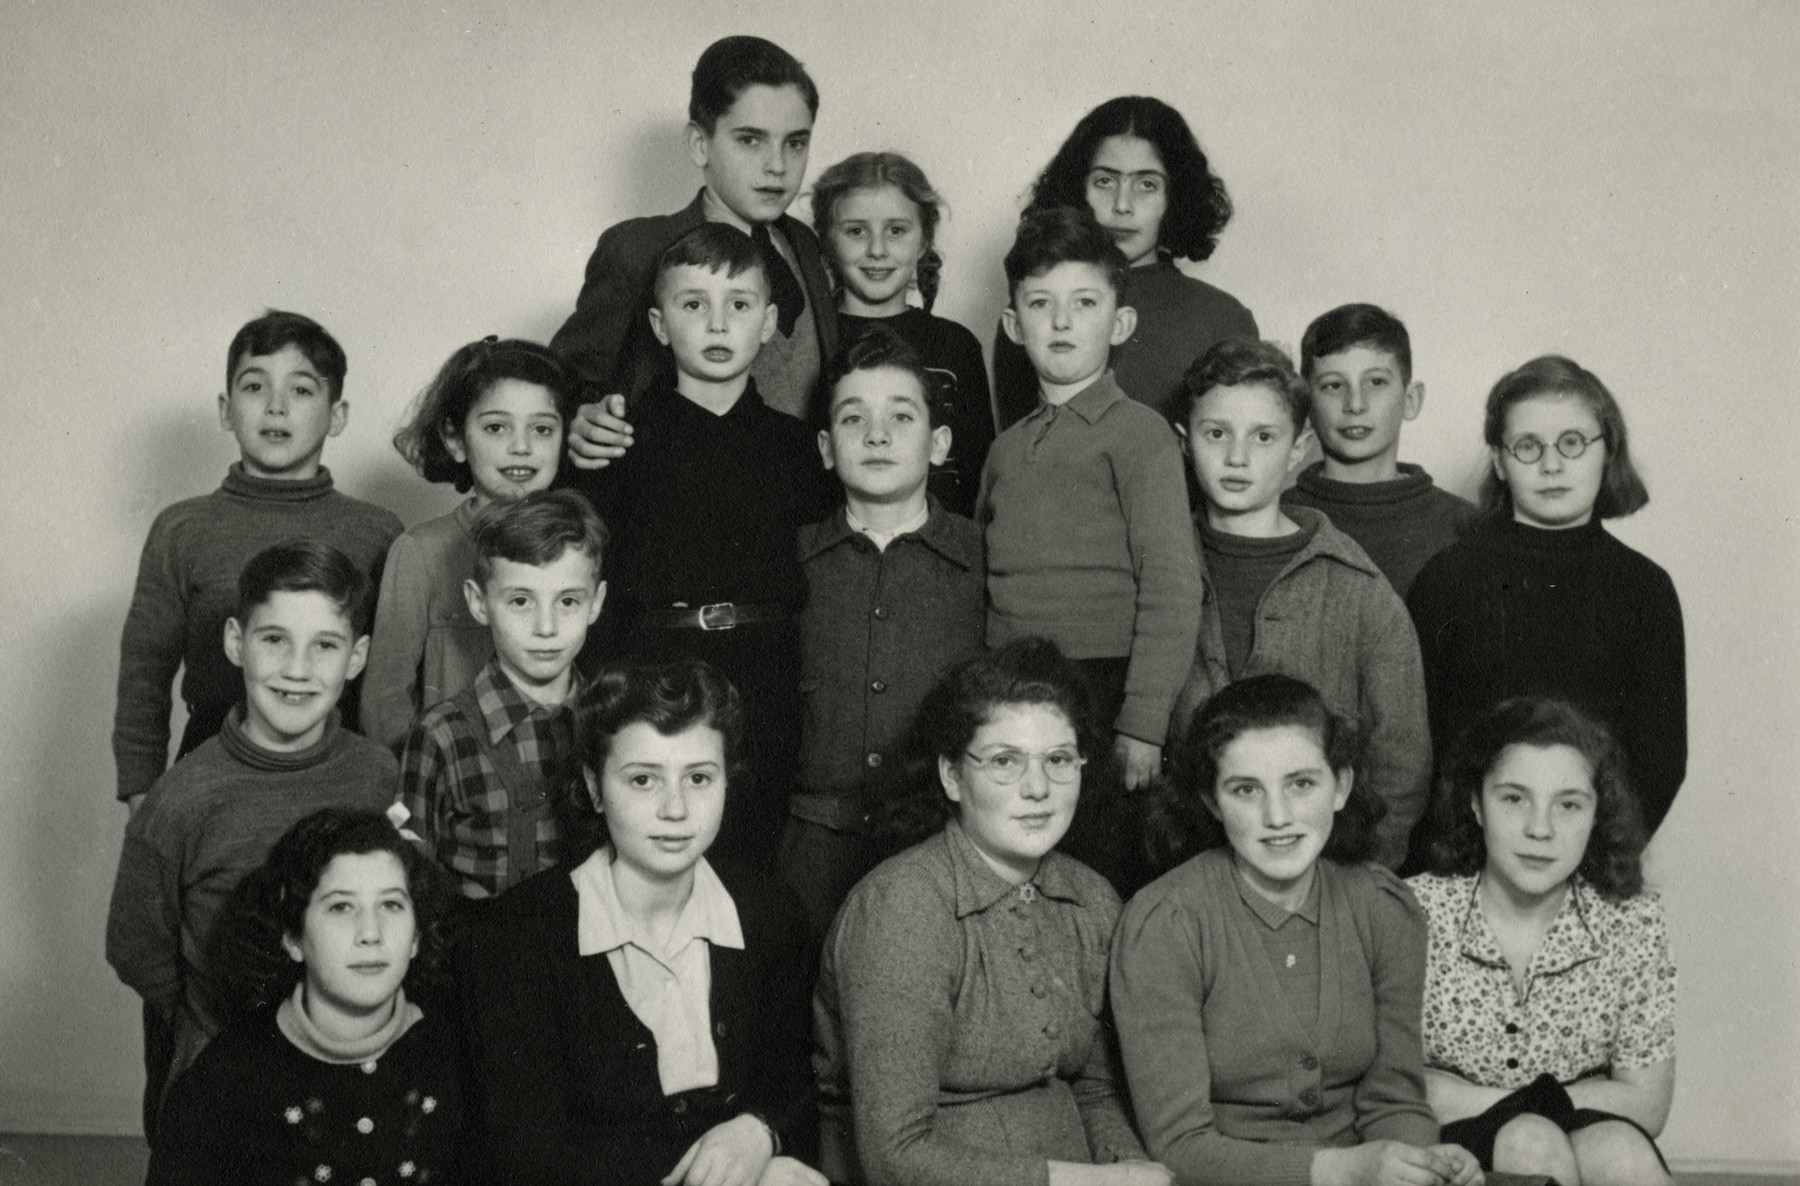 Group portrait of the children in the Birnbaum postwar orphanage.  Pictured (left to right) Front row: Frieda Rosengarten (Levy), Regina Birnbaum, Ursula Breslau, Trude Stein and Hetty Konyn. Second row: Api Konjn, Haim Linder, Samuel (Sampi) Birnbaum, Albert Blumenthat, Chaim, Steienberg, Jo Kauveren (Azi Tzedek) and Marion Blumenthal (Lazan). Third row: Alfred Heymann, Reine Steine, Nechama Davids, Suzy Birnbaum and Eva Stein.